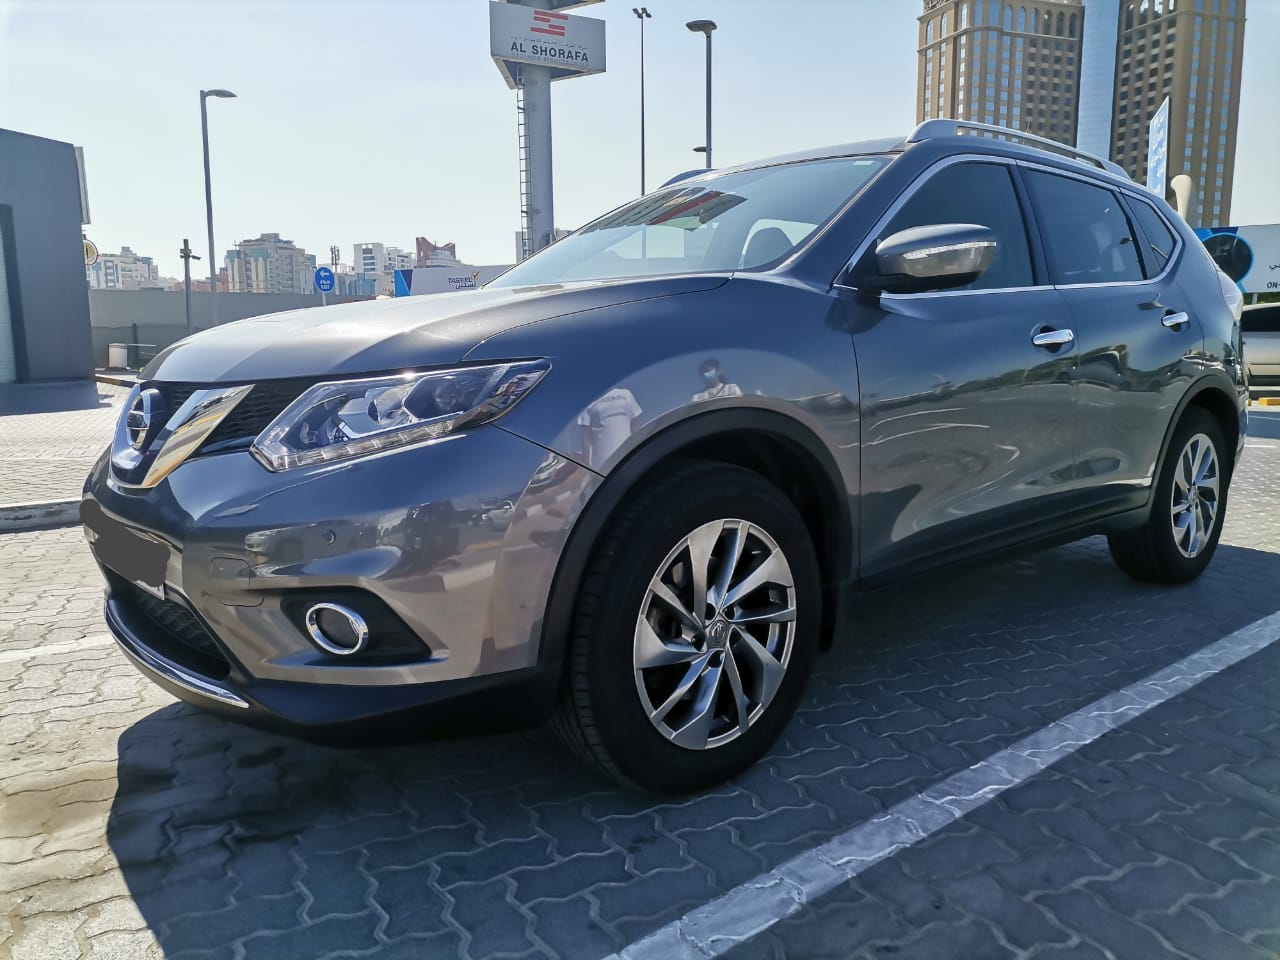 Used Nissan X-Trail (2.5 SL 4WD 7-seat) 2015 For Sale In Dubai